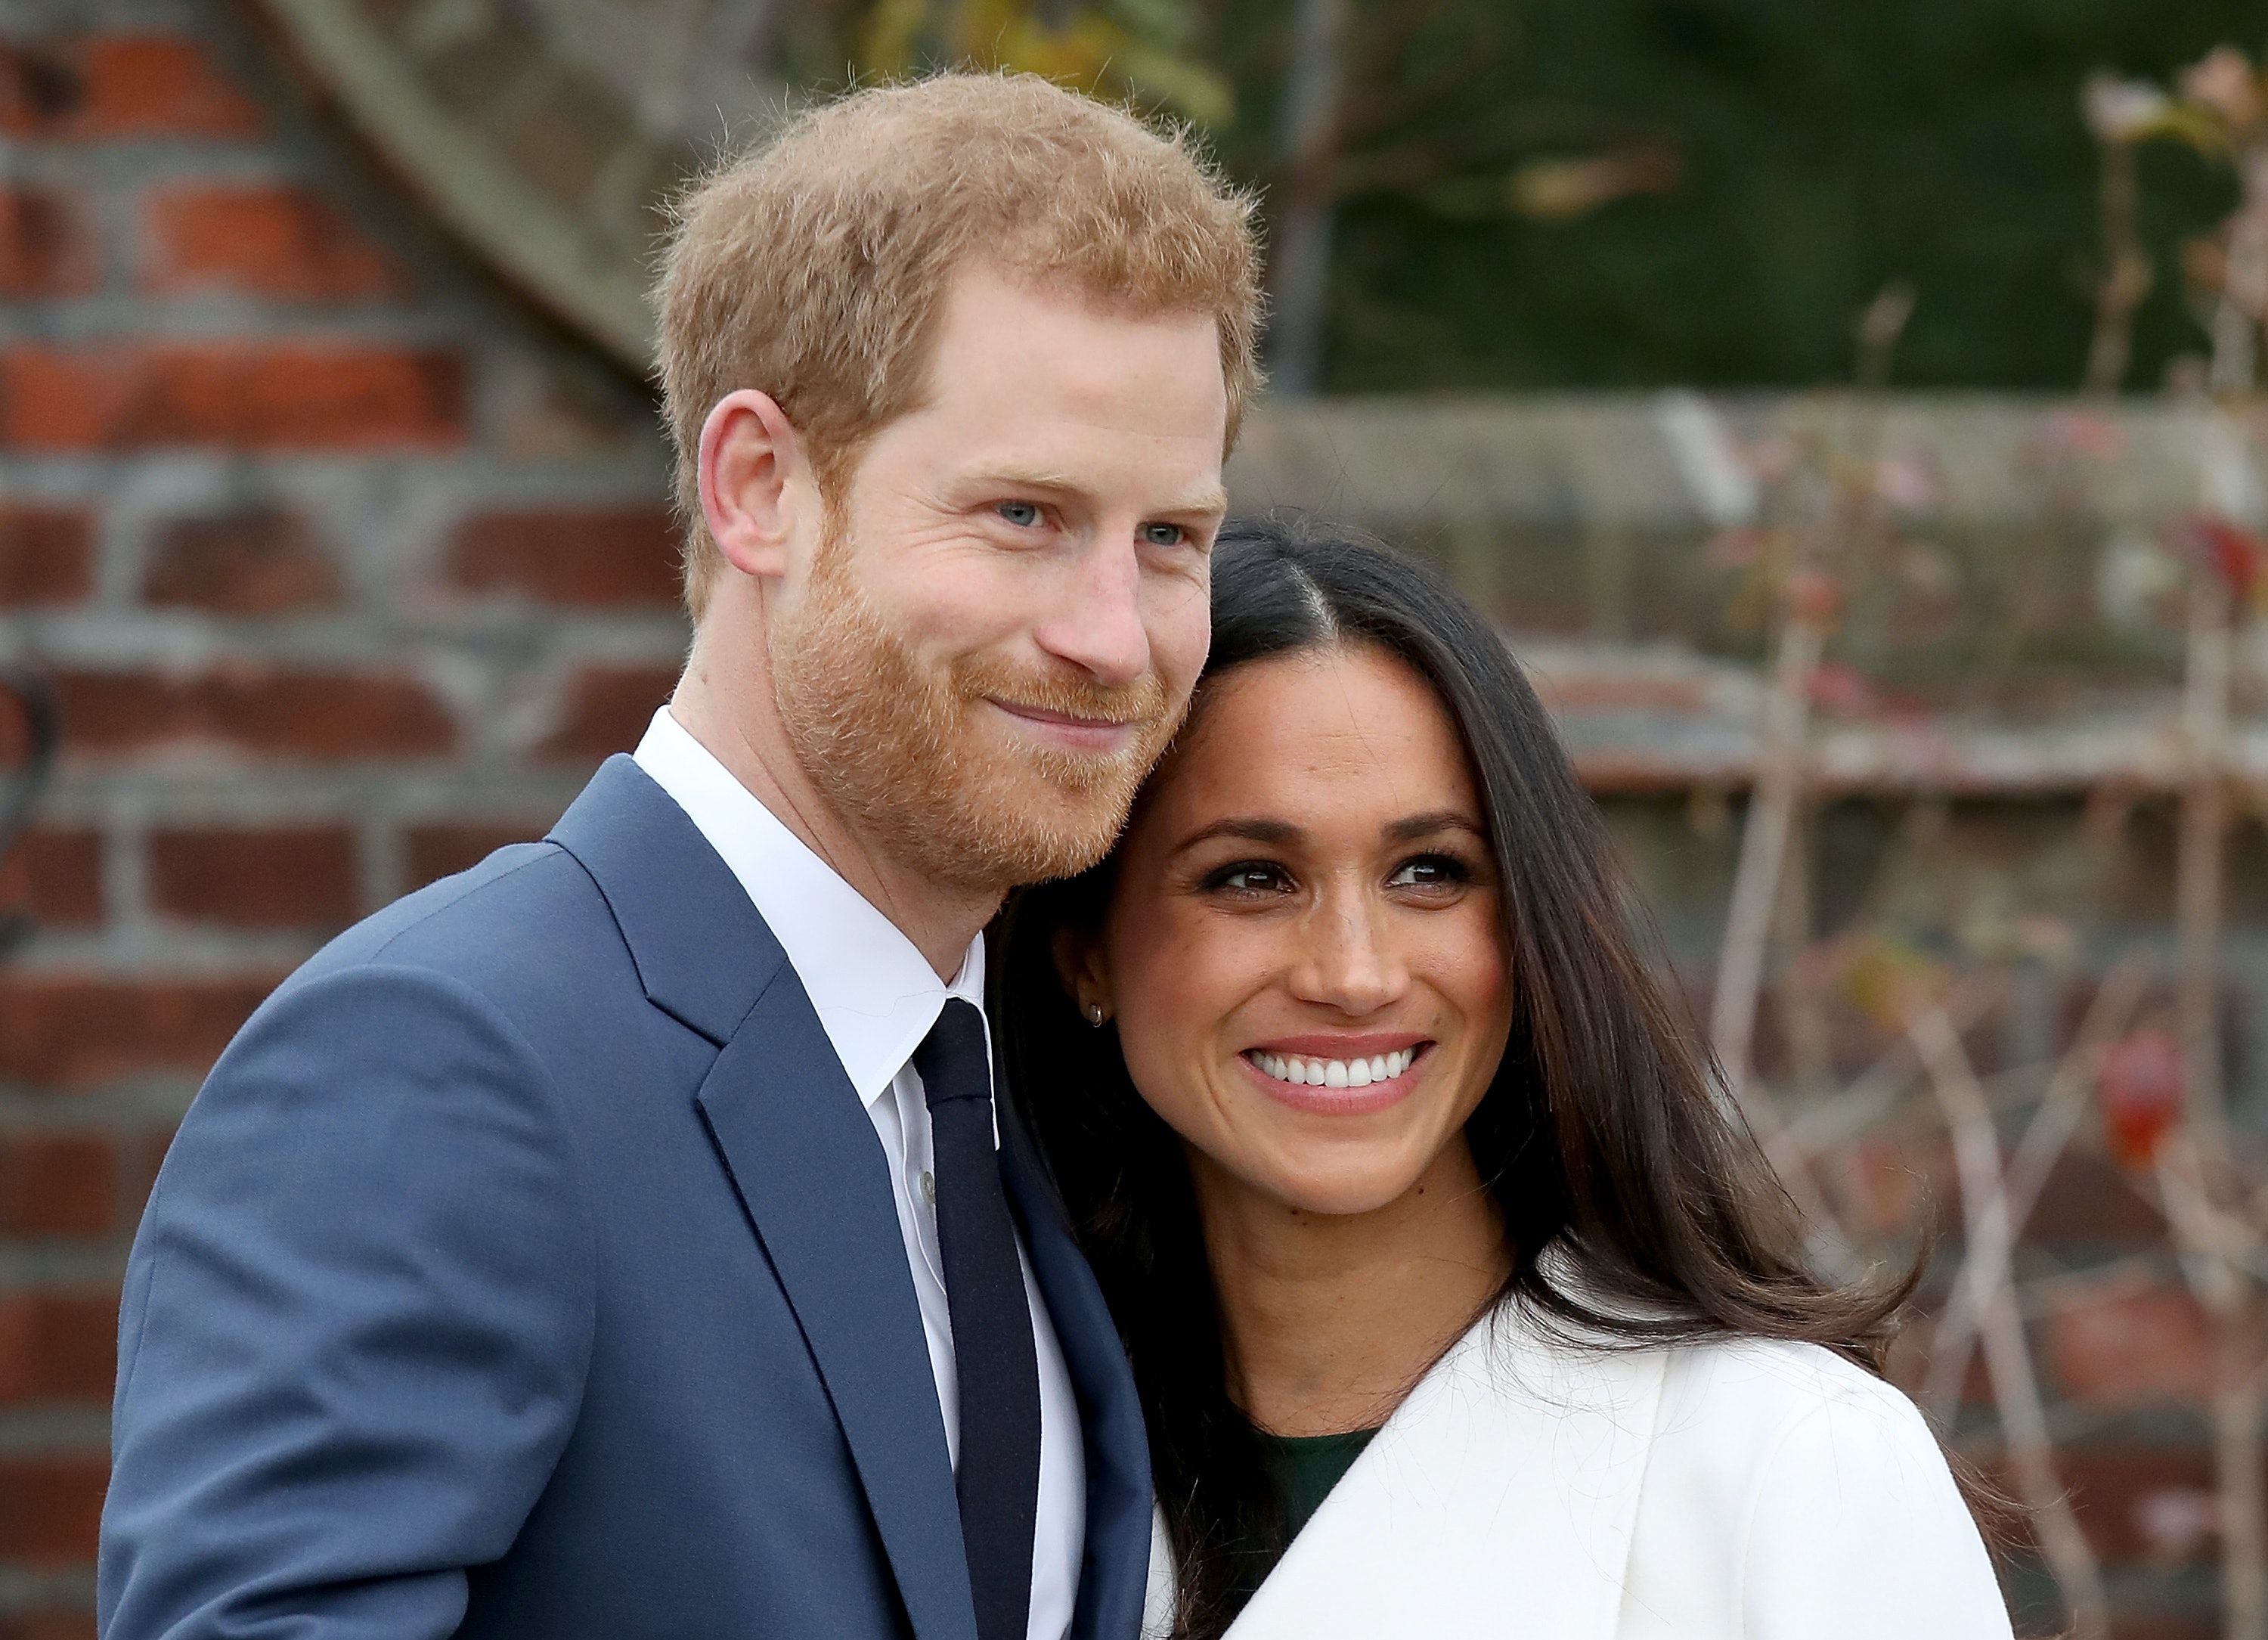 Here's how Meghan and Harry are celebrating tonight at the Royal Wedding party Here's how Meghan and Harry are celebrating tonight at the Royal Wedding party new picture